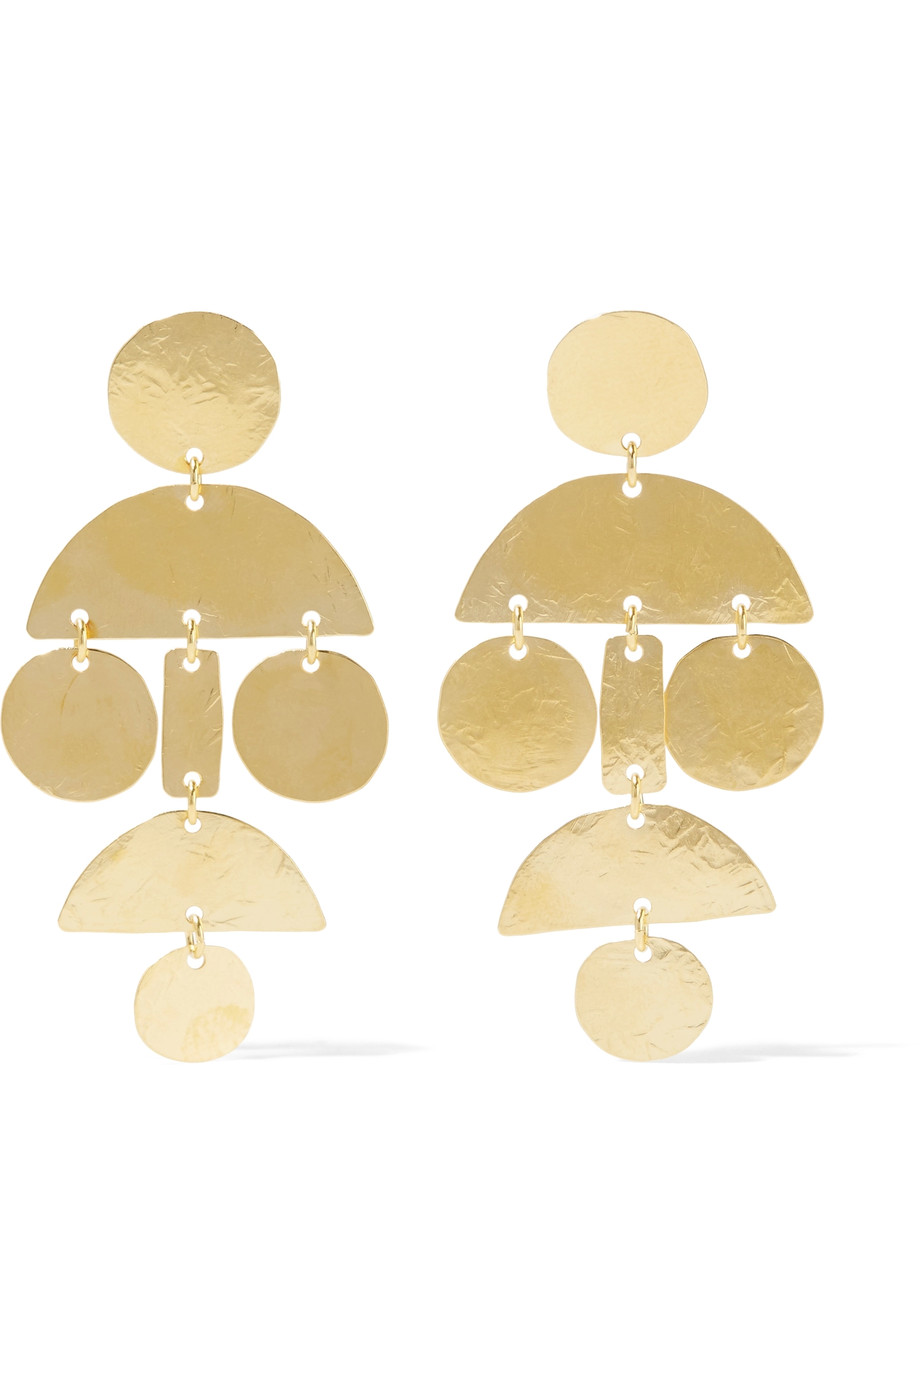 ANNIE COSTELLO BROWN | MINI POMPOM GOLD-PLATED EARRINGS - $275